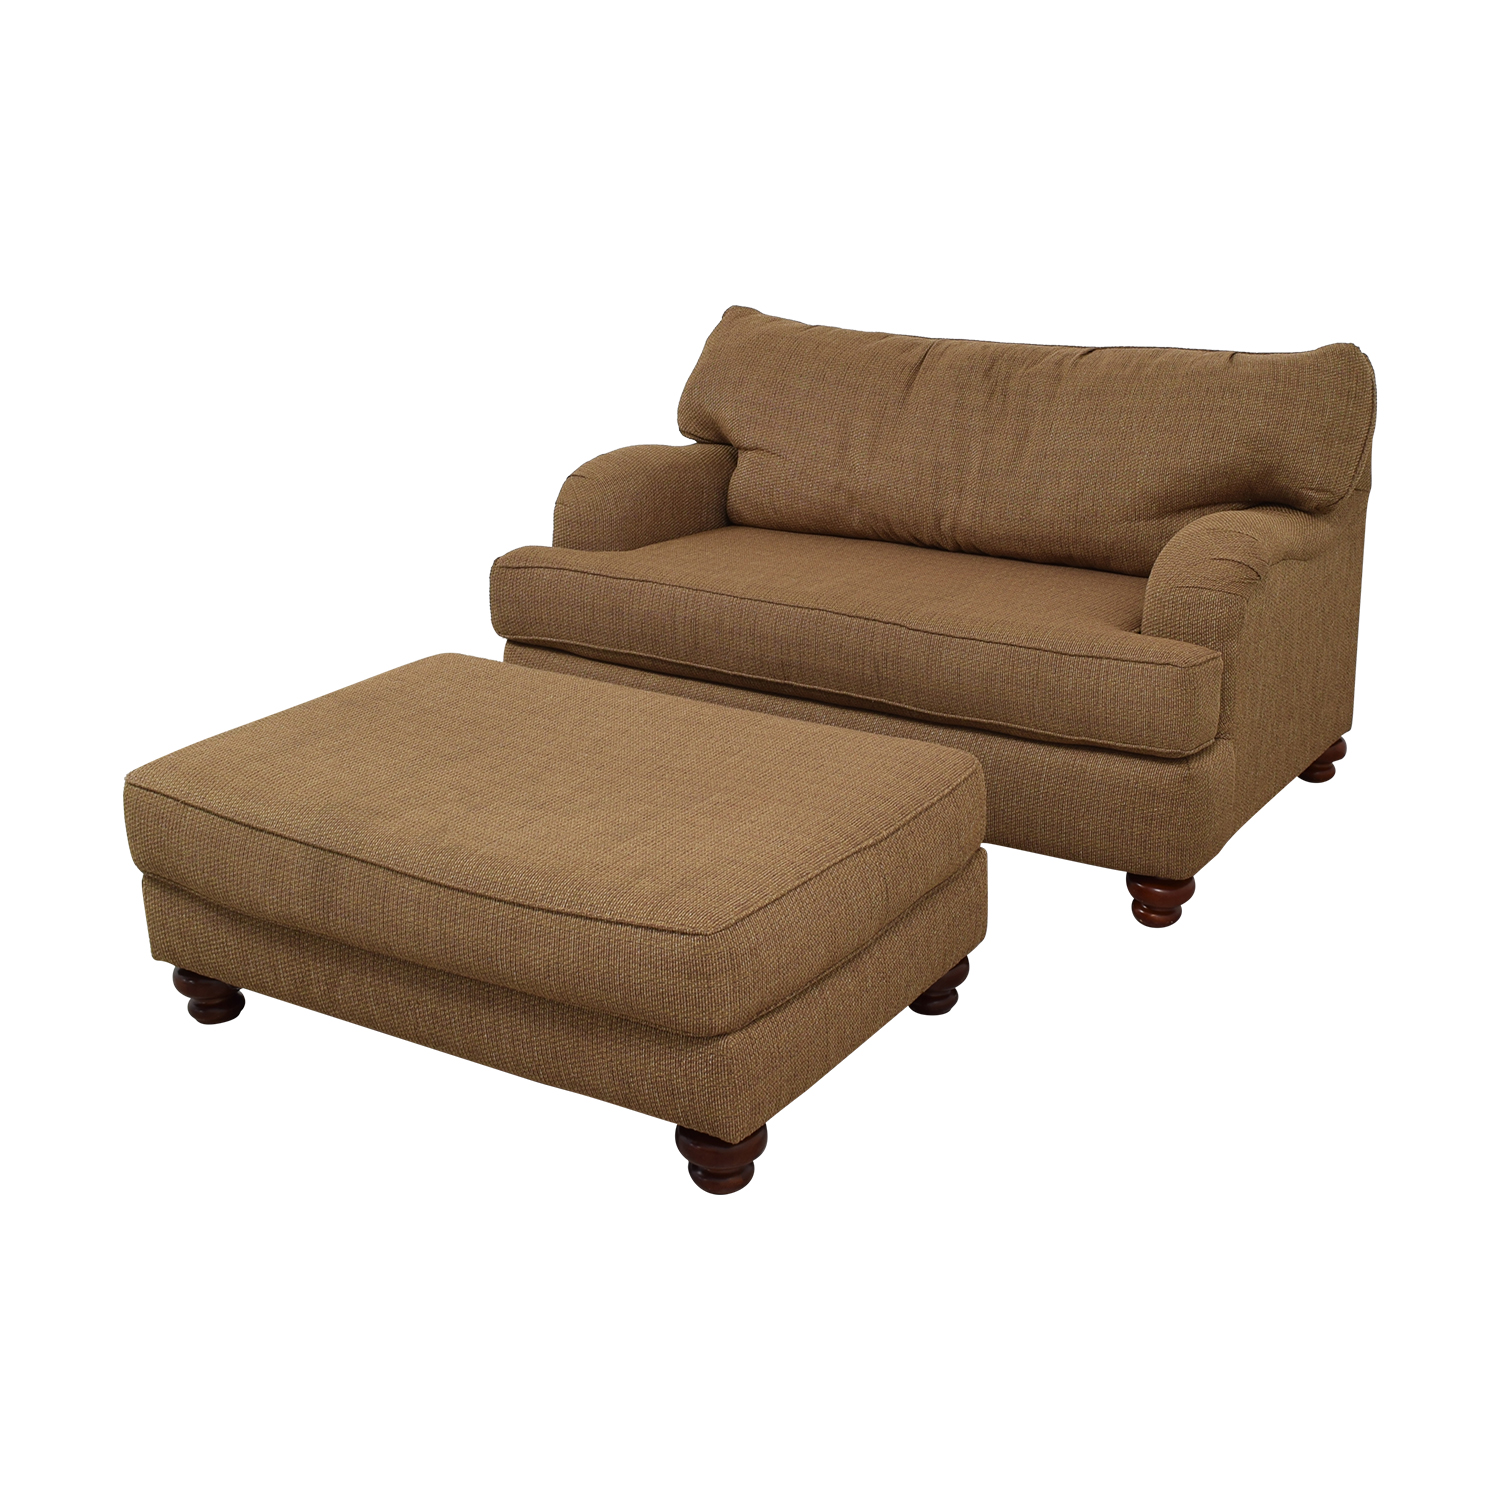 Klaussner Home Furnishings Brown Single Cushion Couch and Ottoman / Accent Chairs